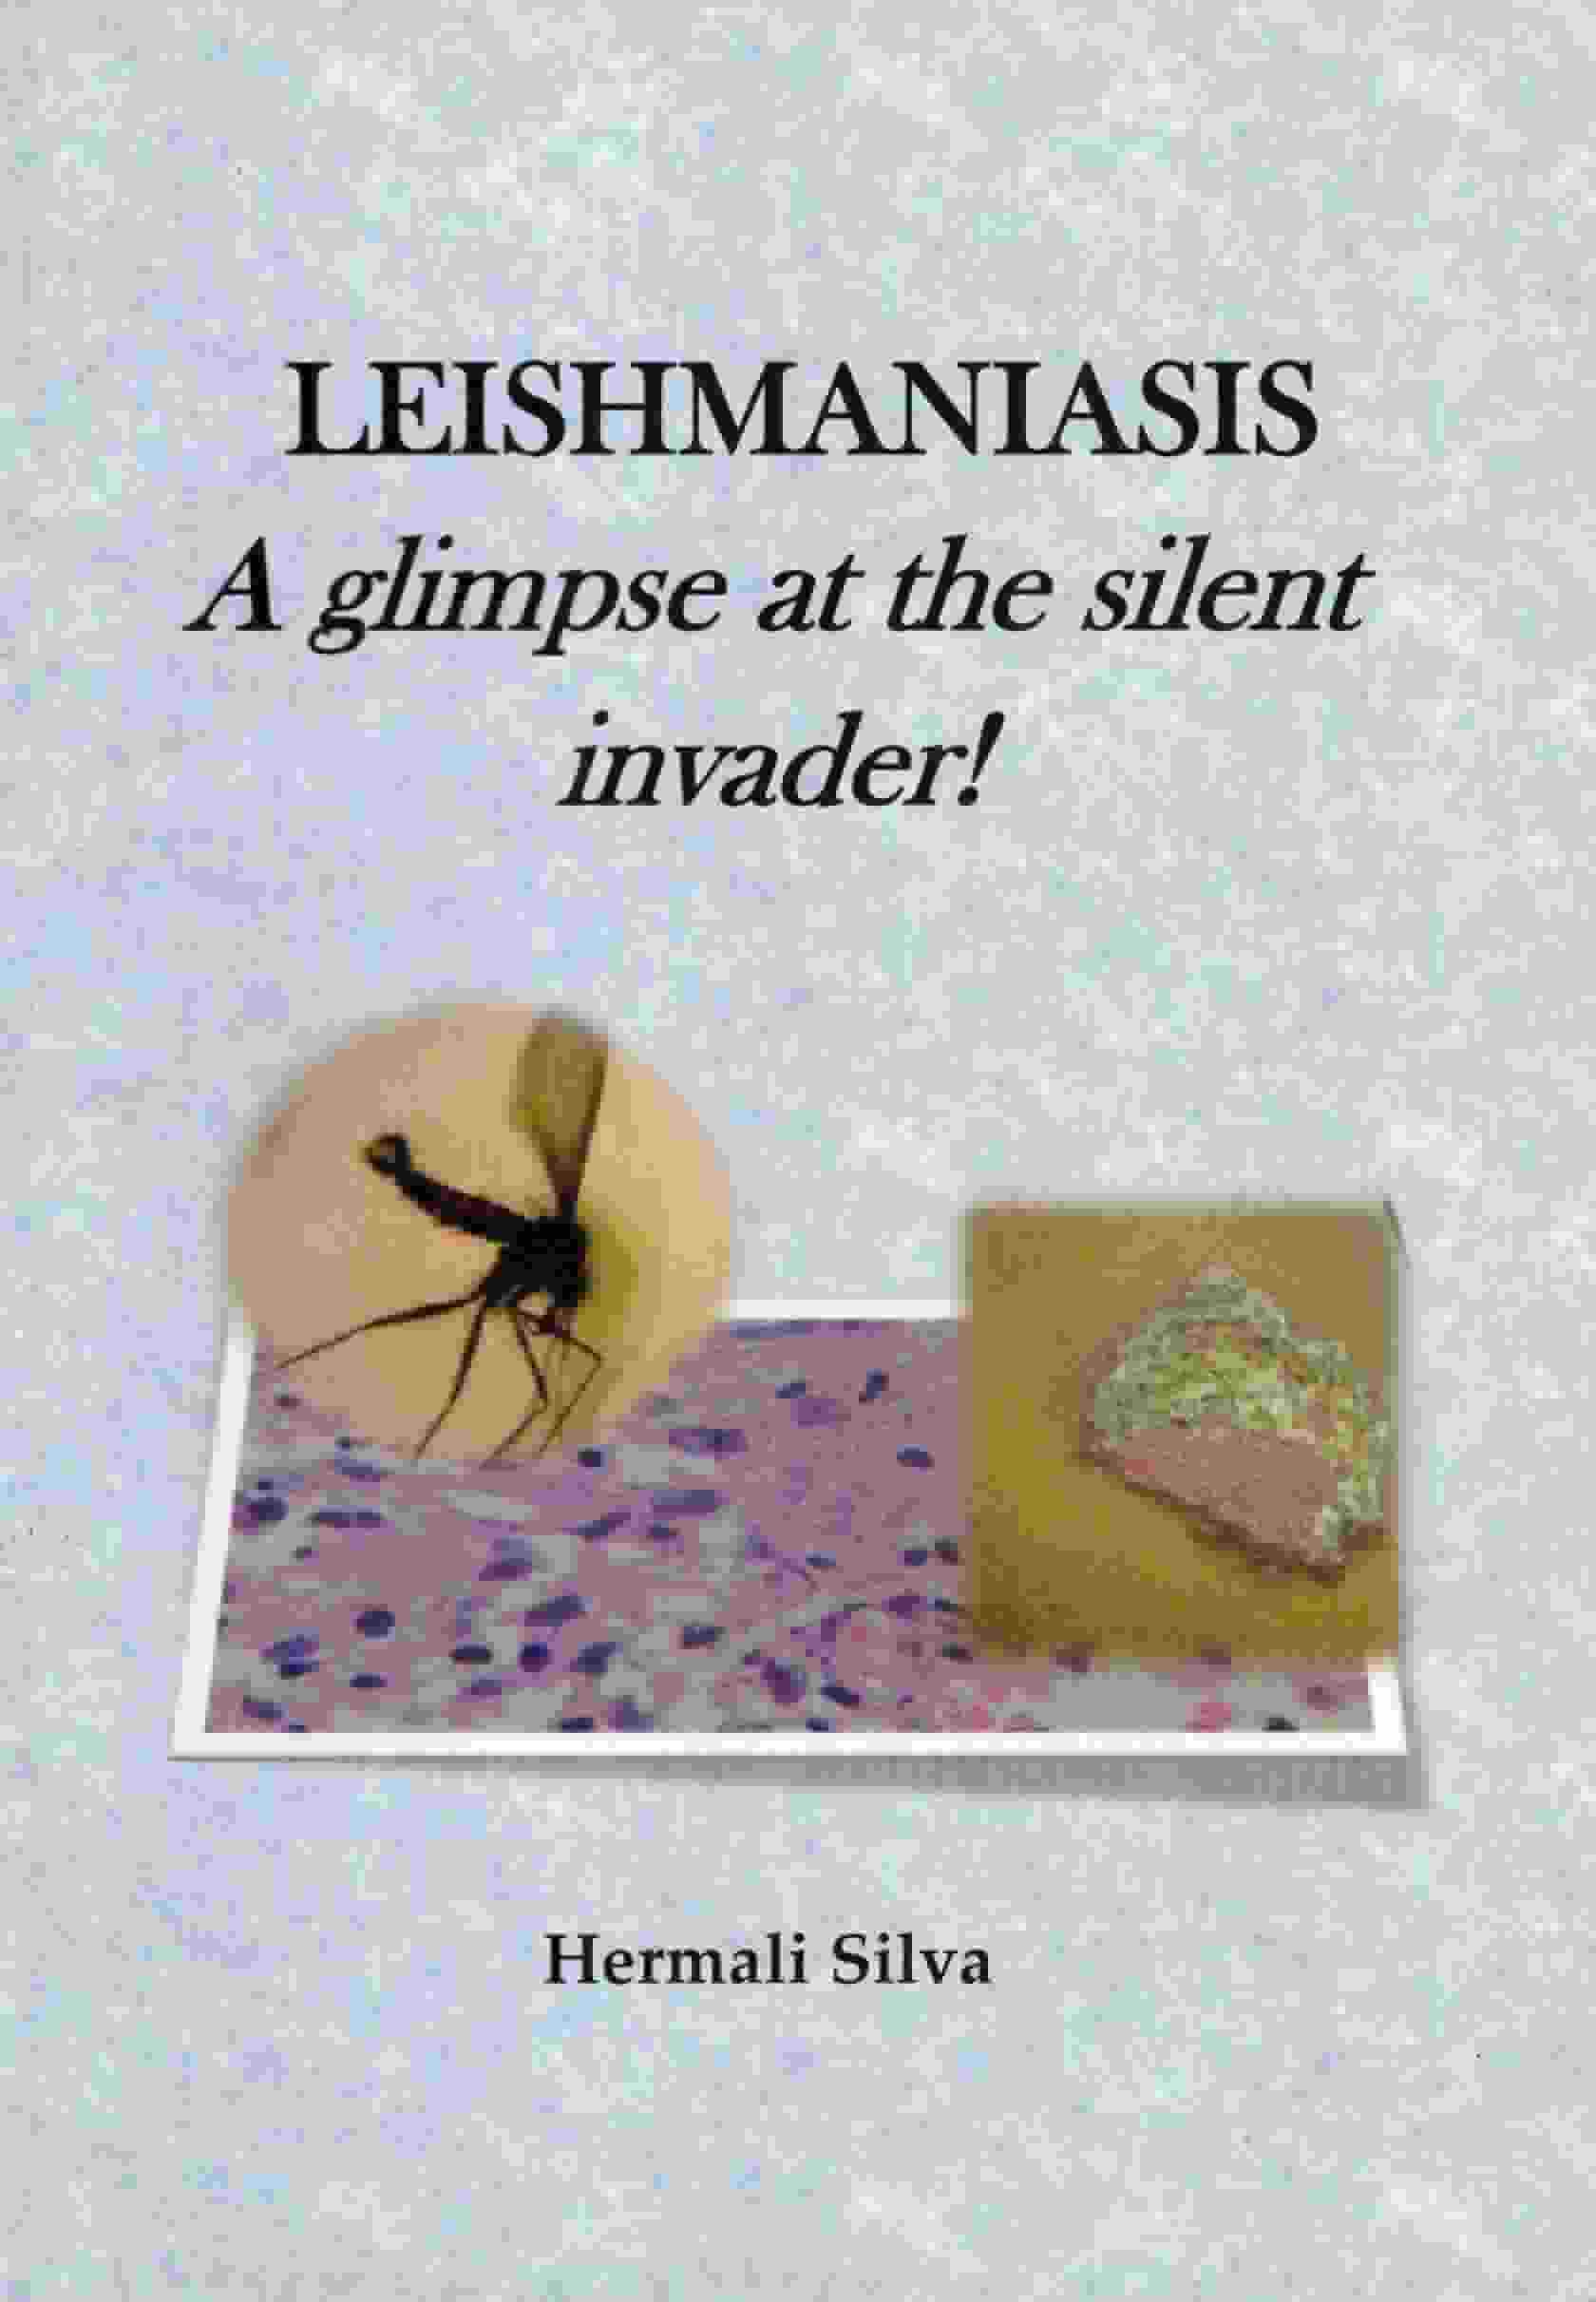 LEISHMANIASIS A glimpse at the silent invader!